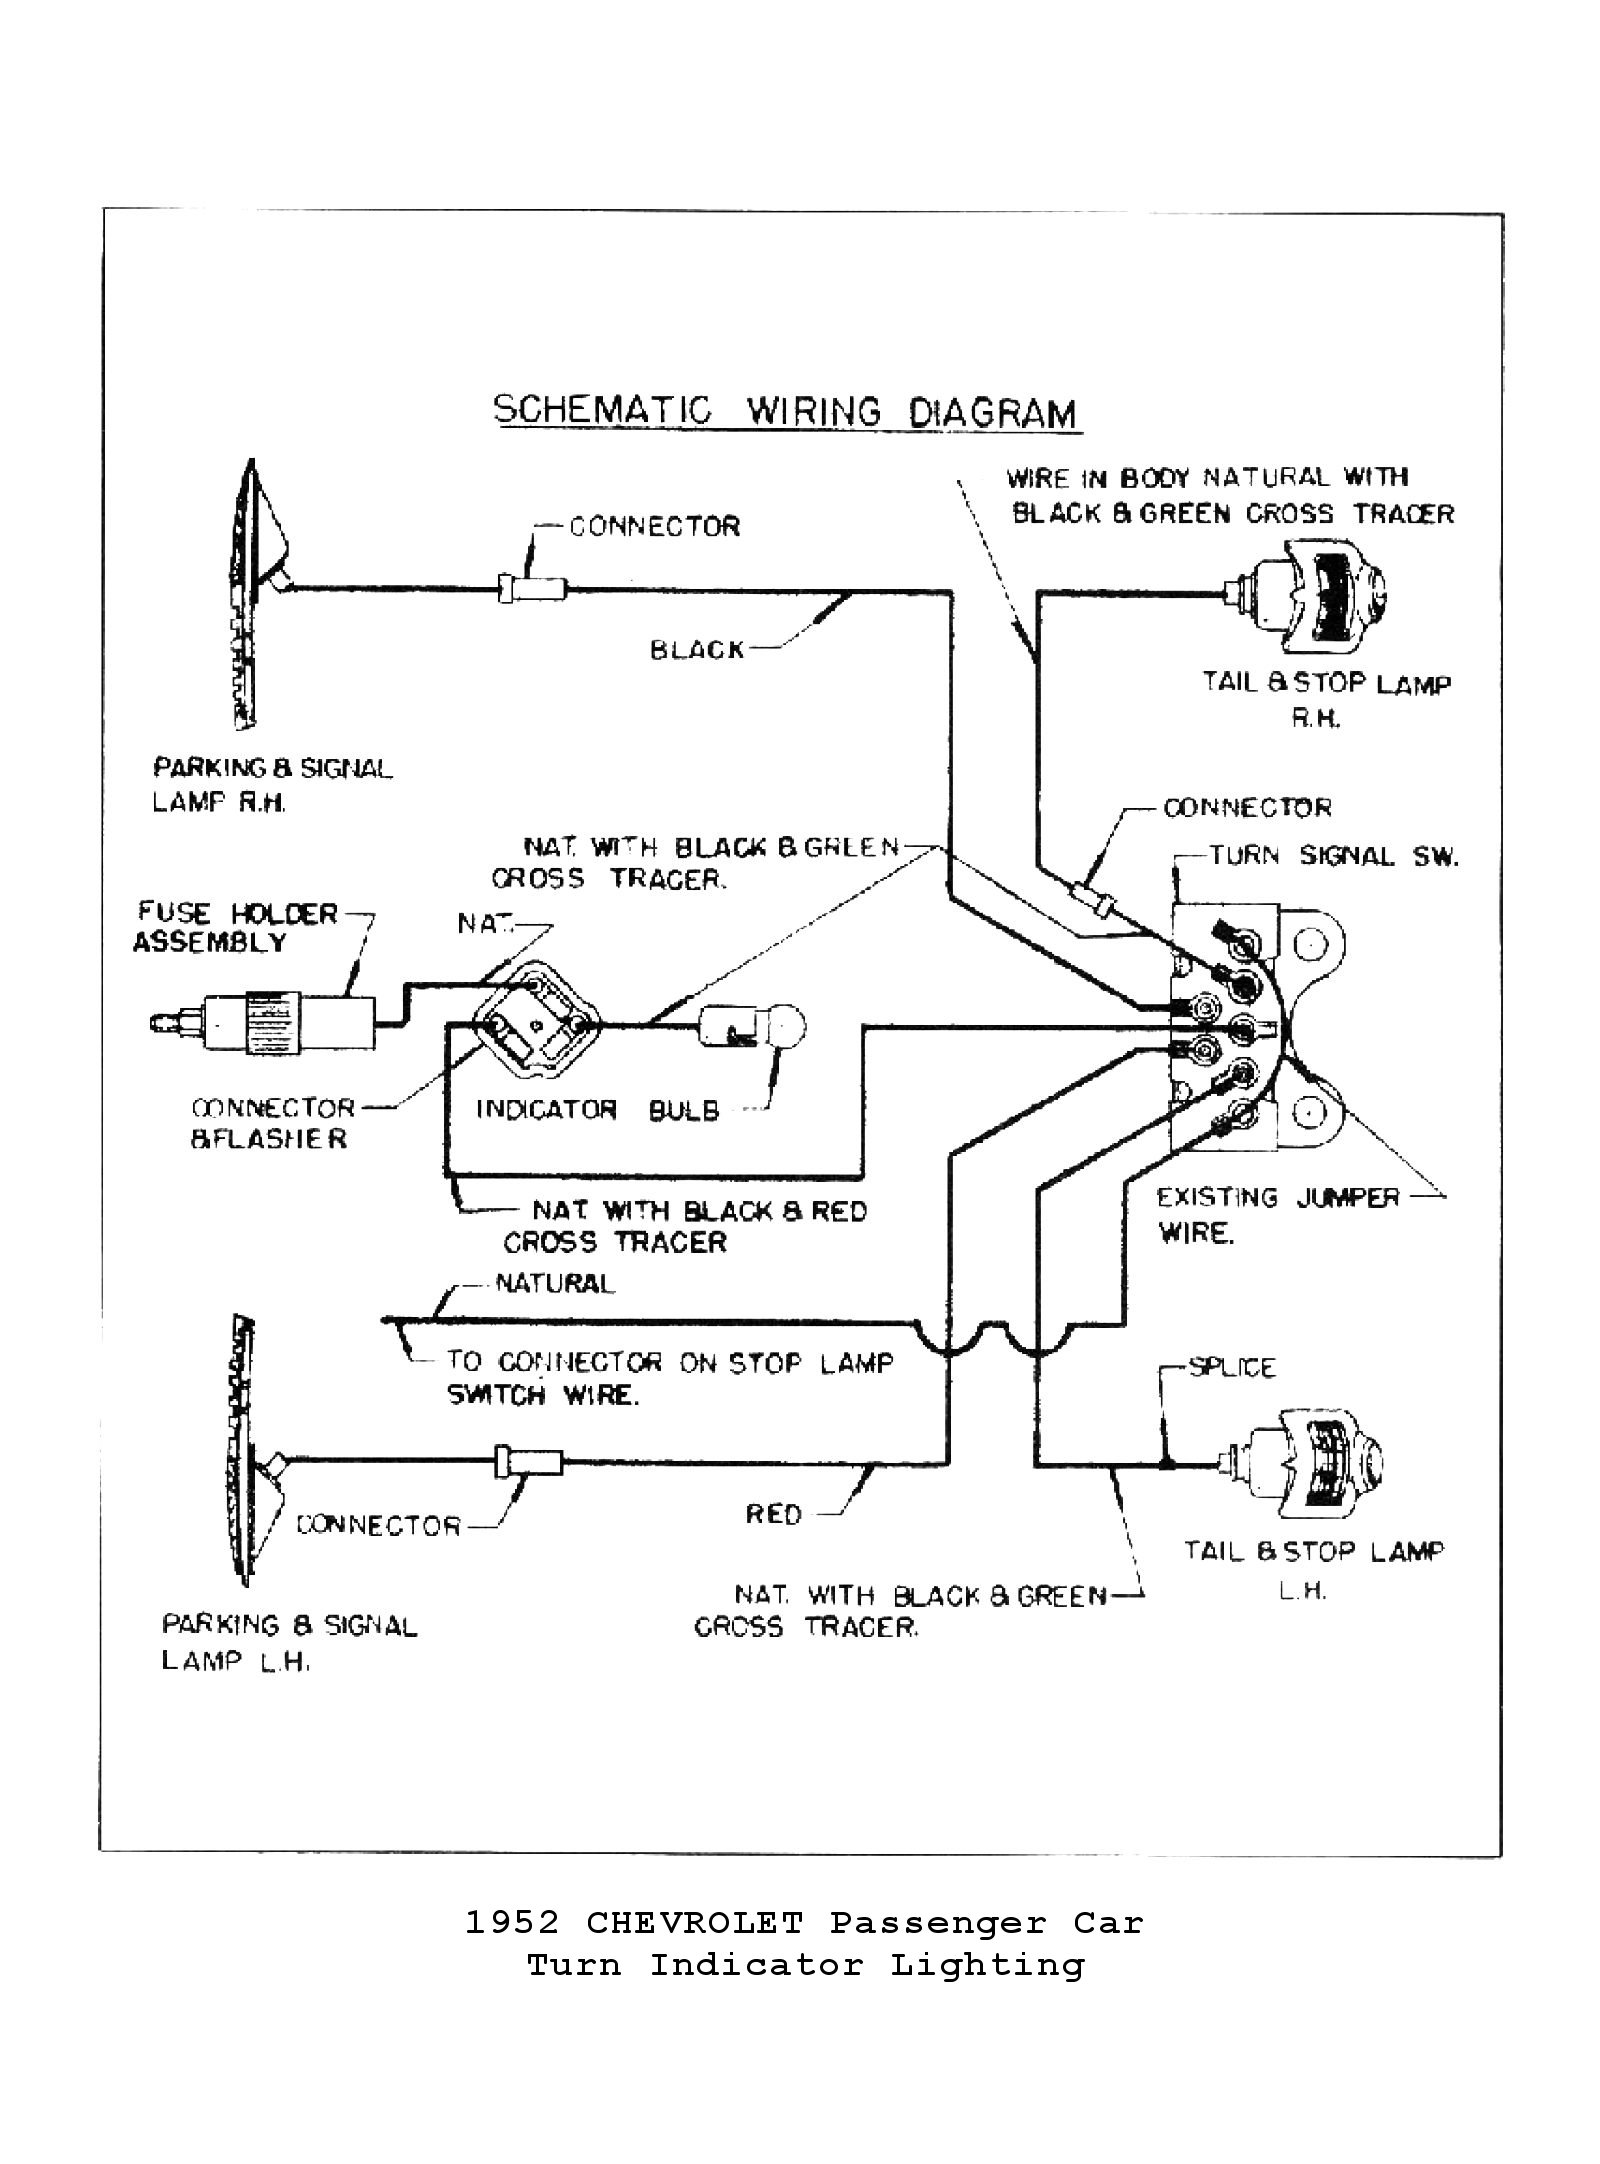 1951 Dodge Wiring Diagram Schematics Wiring Diagram 1951 Ford F1 Wiring  Harness 1951 Ford Turn Signal Wiring Diagram